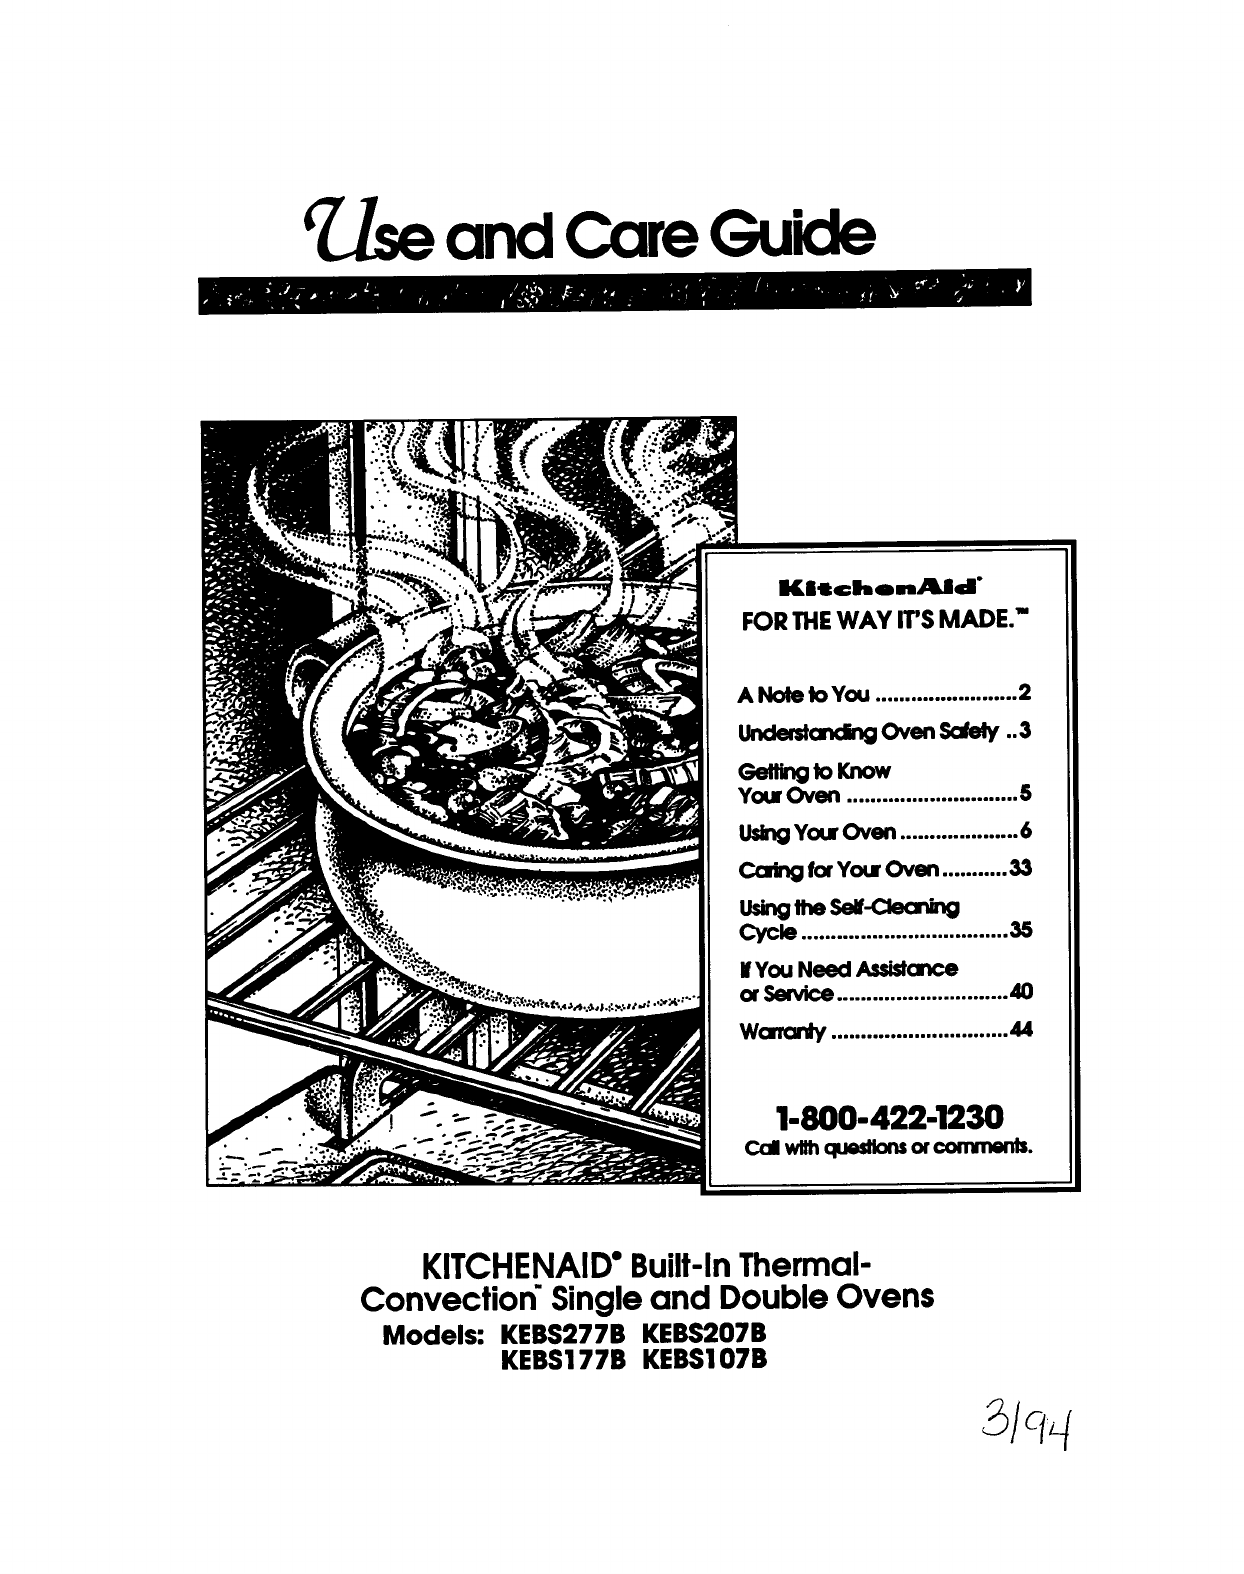 Kitchenaid Convection Oven Kebs177b User Guide